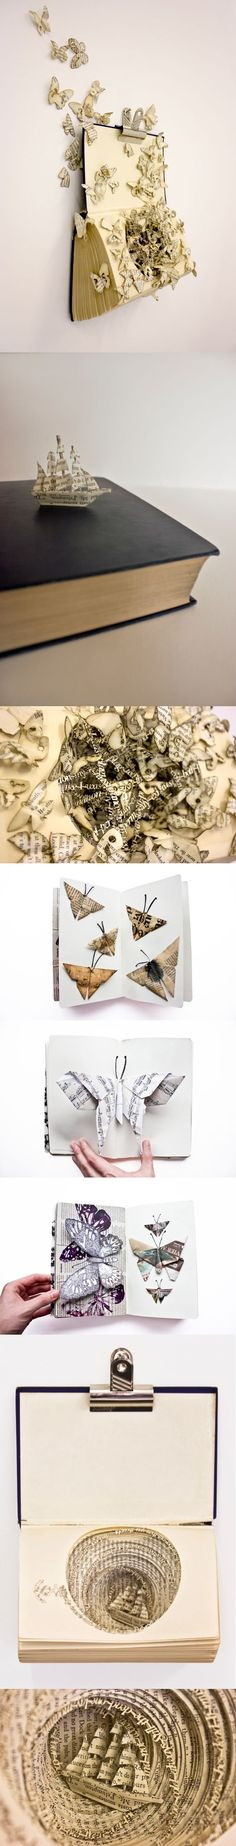 Book art by Thomas Wightman.